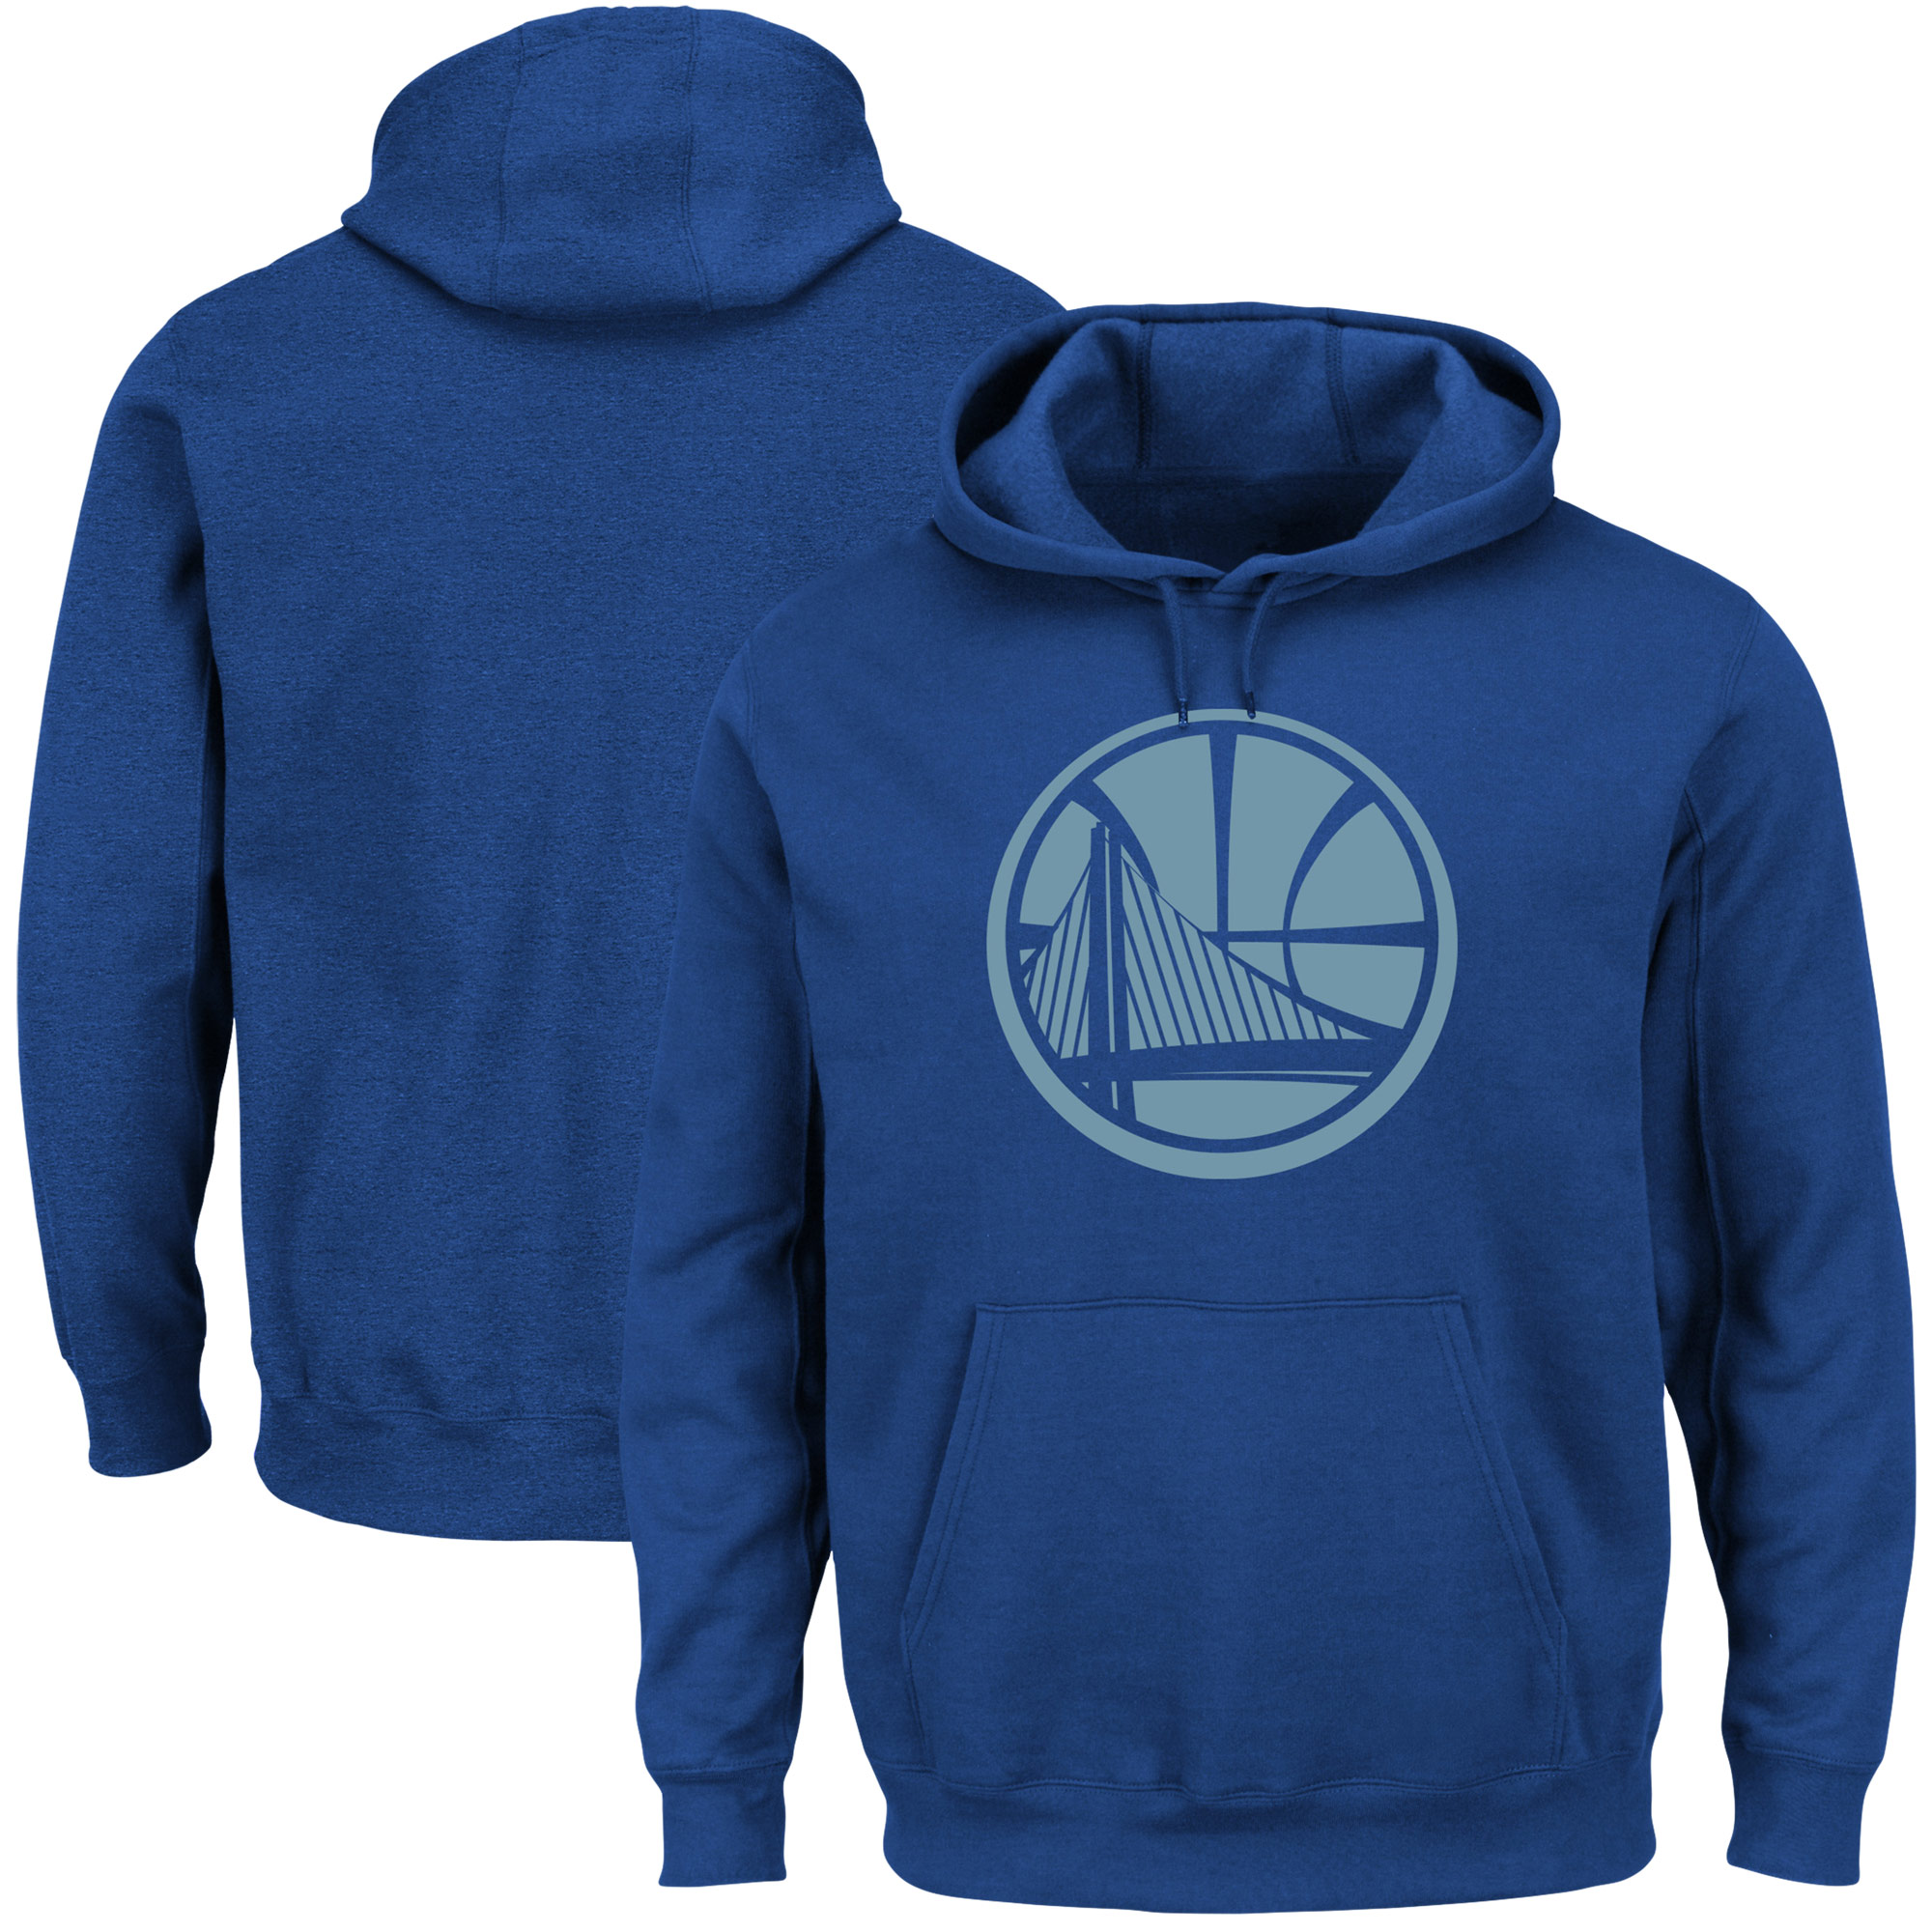 Golden State Warriors Majestic Reflective Tek Patch Hoodie - Royal